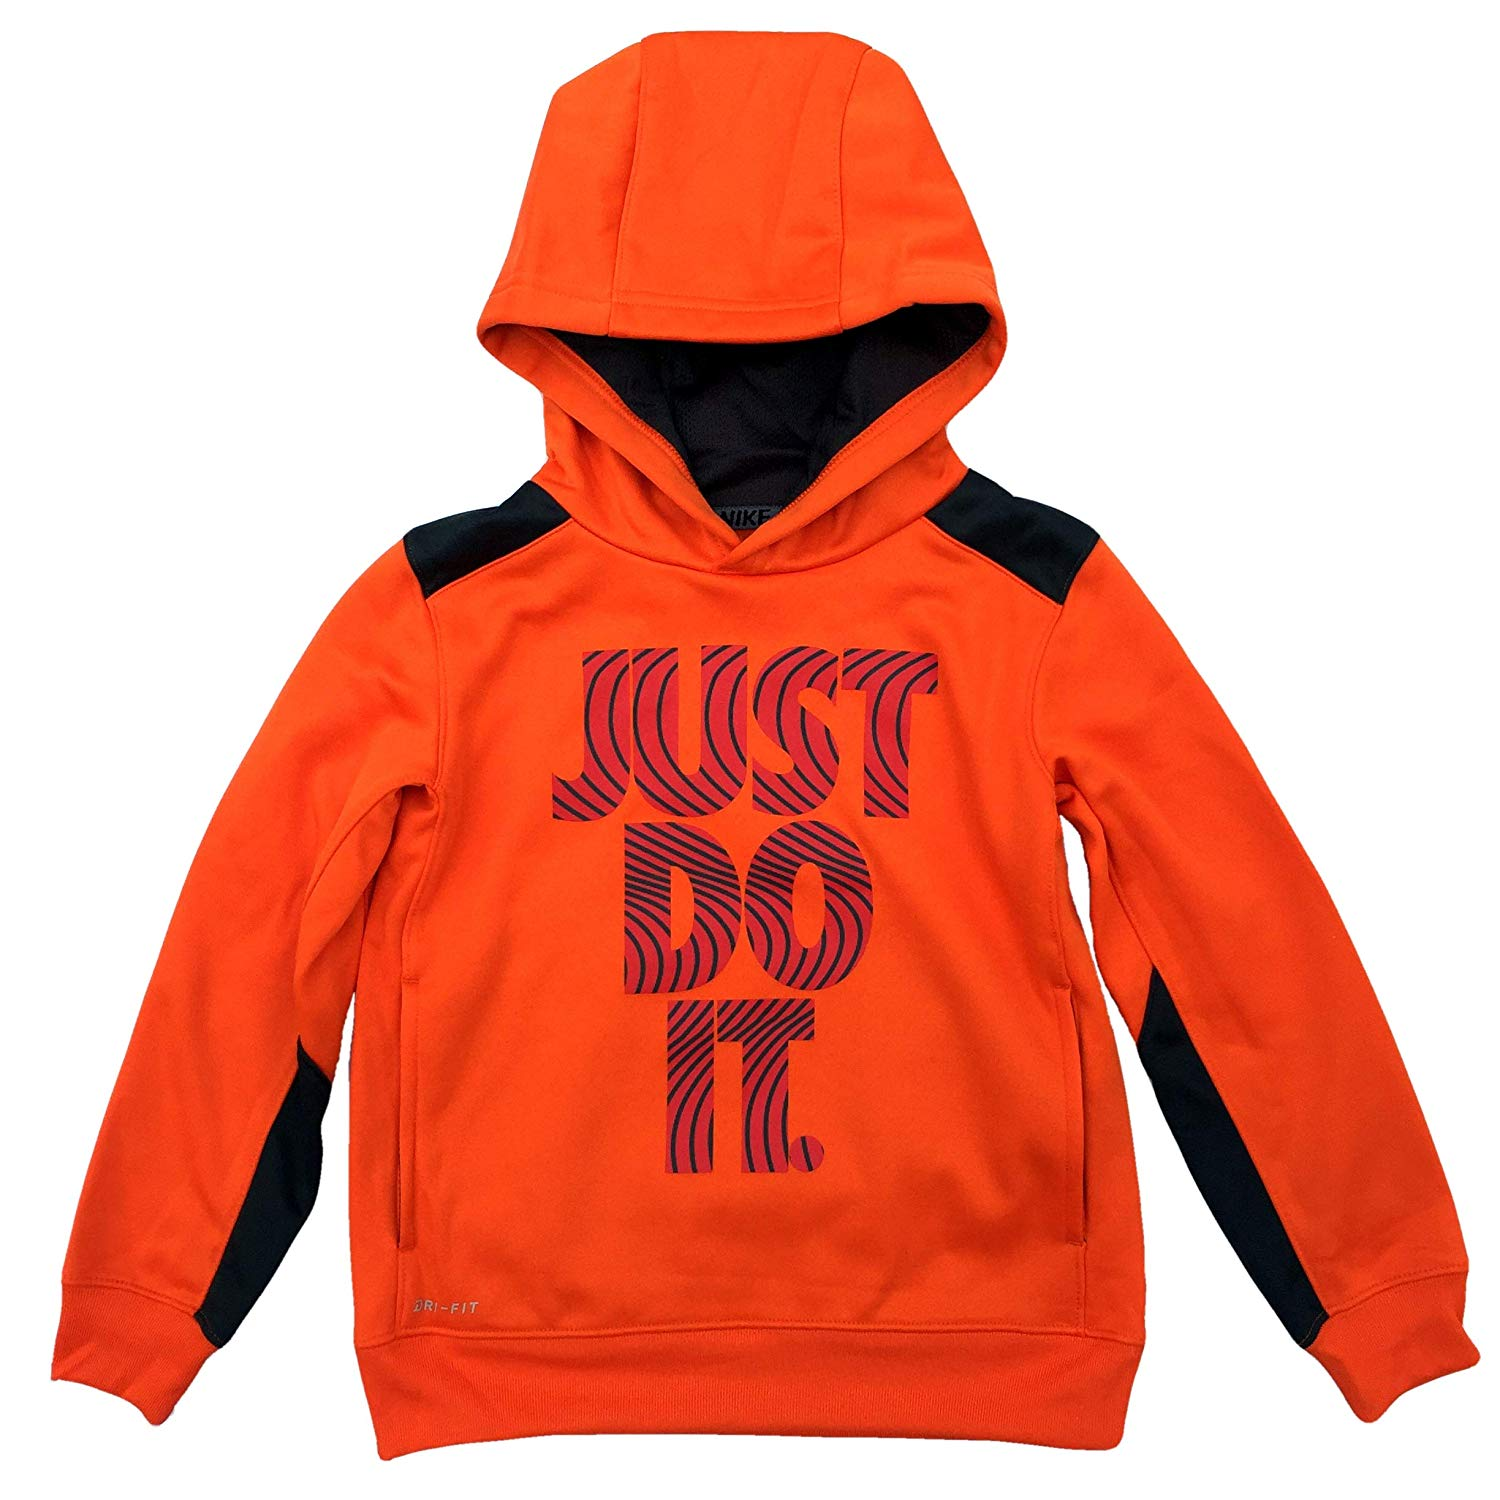 169840ed299c NIKE Little Boys  Dri-Fit Therma Fleece Hoodie Pullover Sweatshirt ...